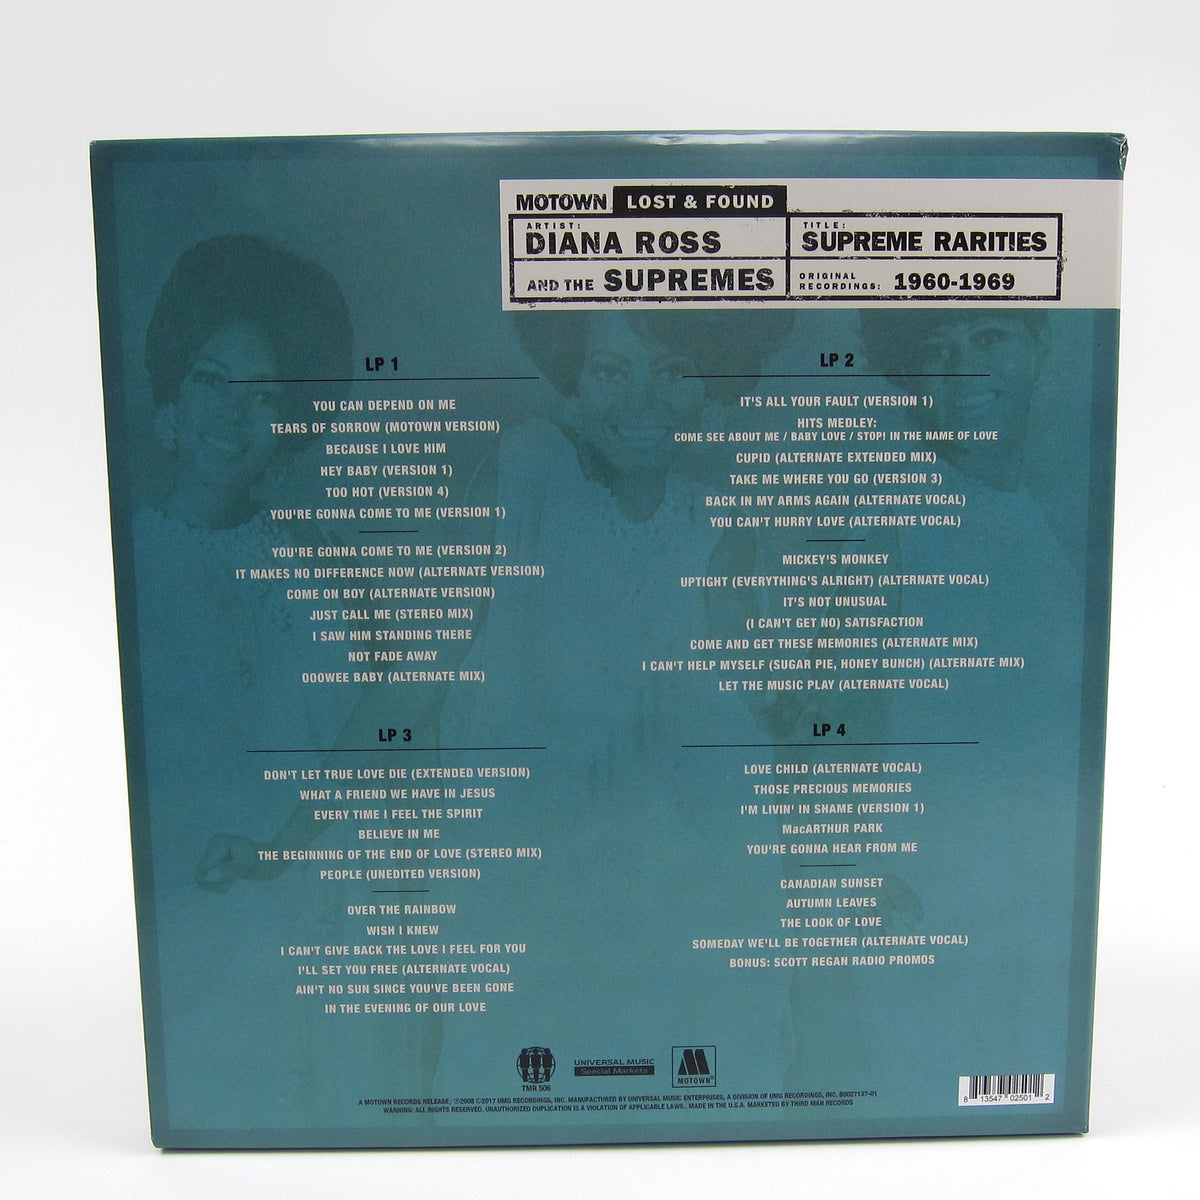 Diana Ross And The Supremes: Supreme Rarities - Motown Lost & Found 1960-1969 Vinyl 4LP Boxset